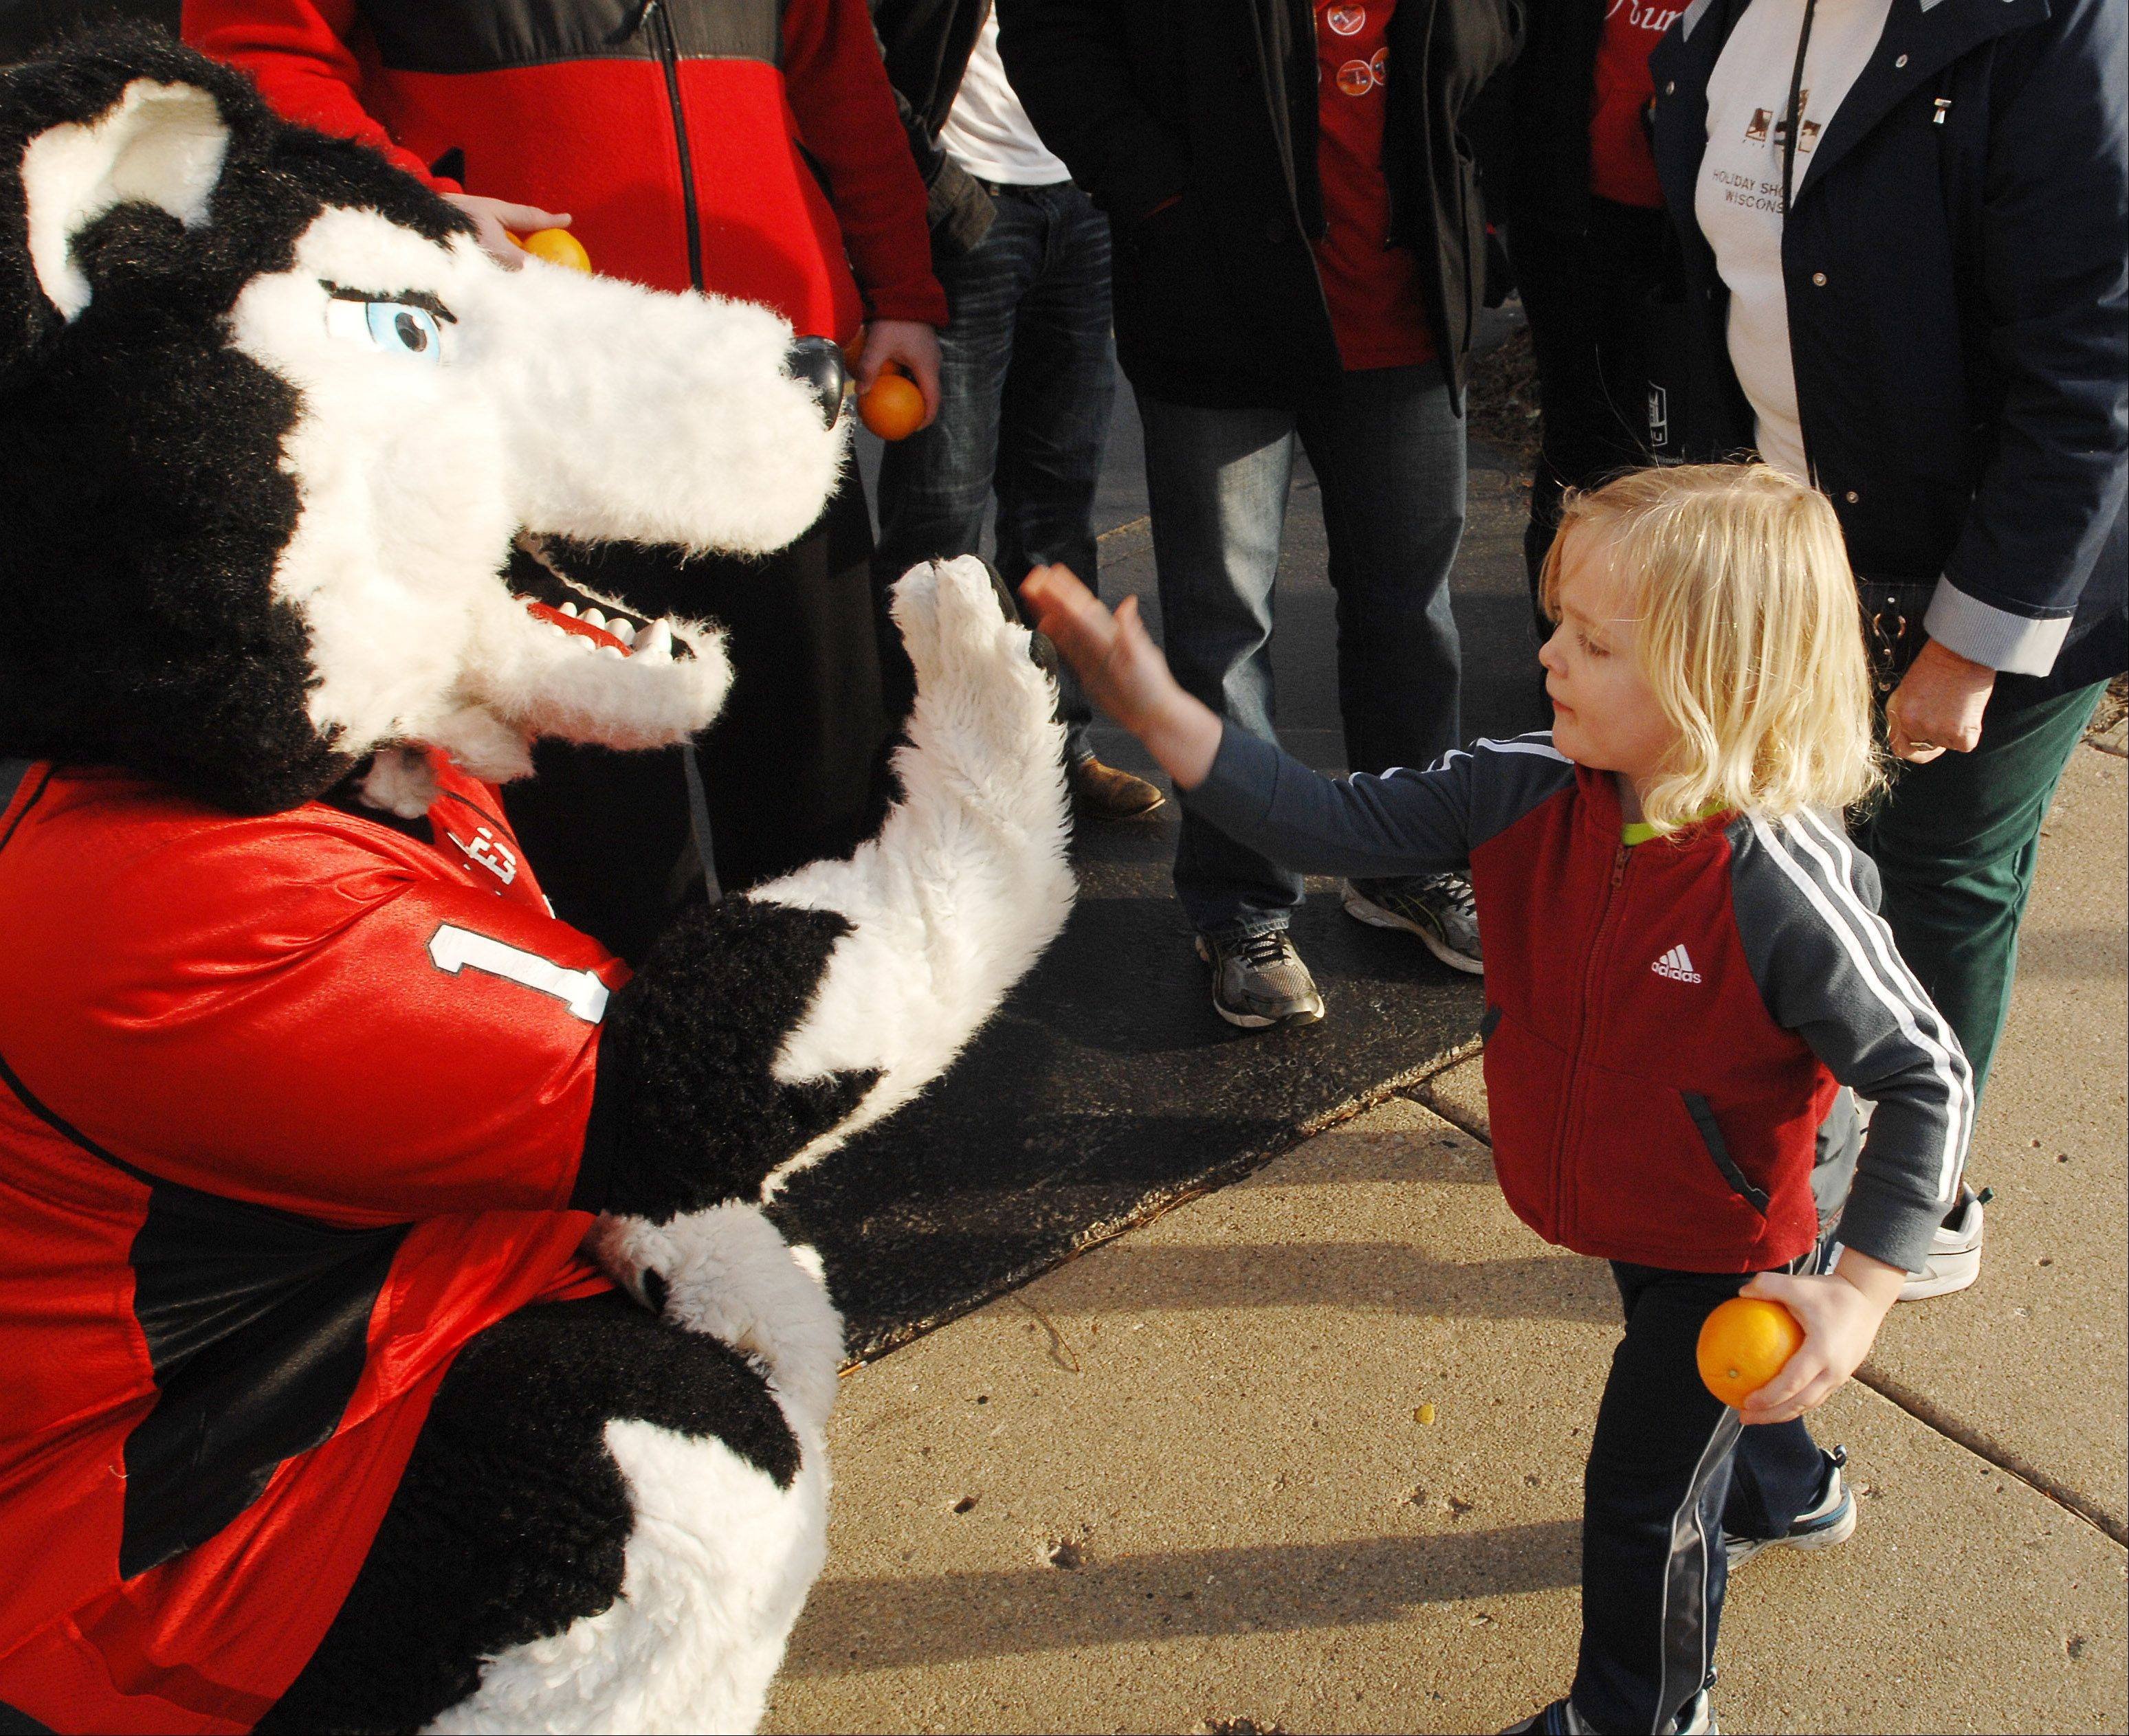 Noah Strandberg, 3, of Warrenville, high-fives Northern Illinois University mascot Victor E. Huskie on Friday in downtown Naperville. A group of NIU students traveled throughout the suburbs and city promoting the football team's Jan. 1 trip to the Orange Bowl and handing out 2,000 oranges to fans.